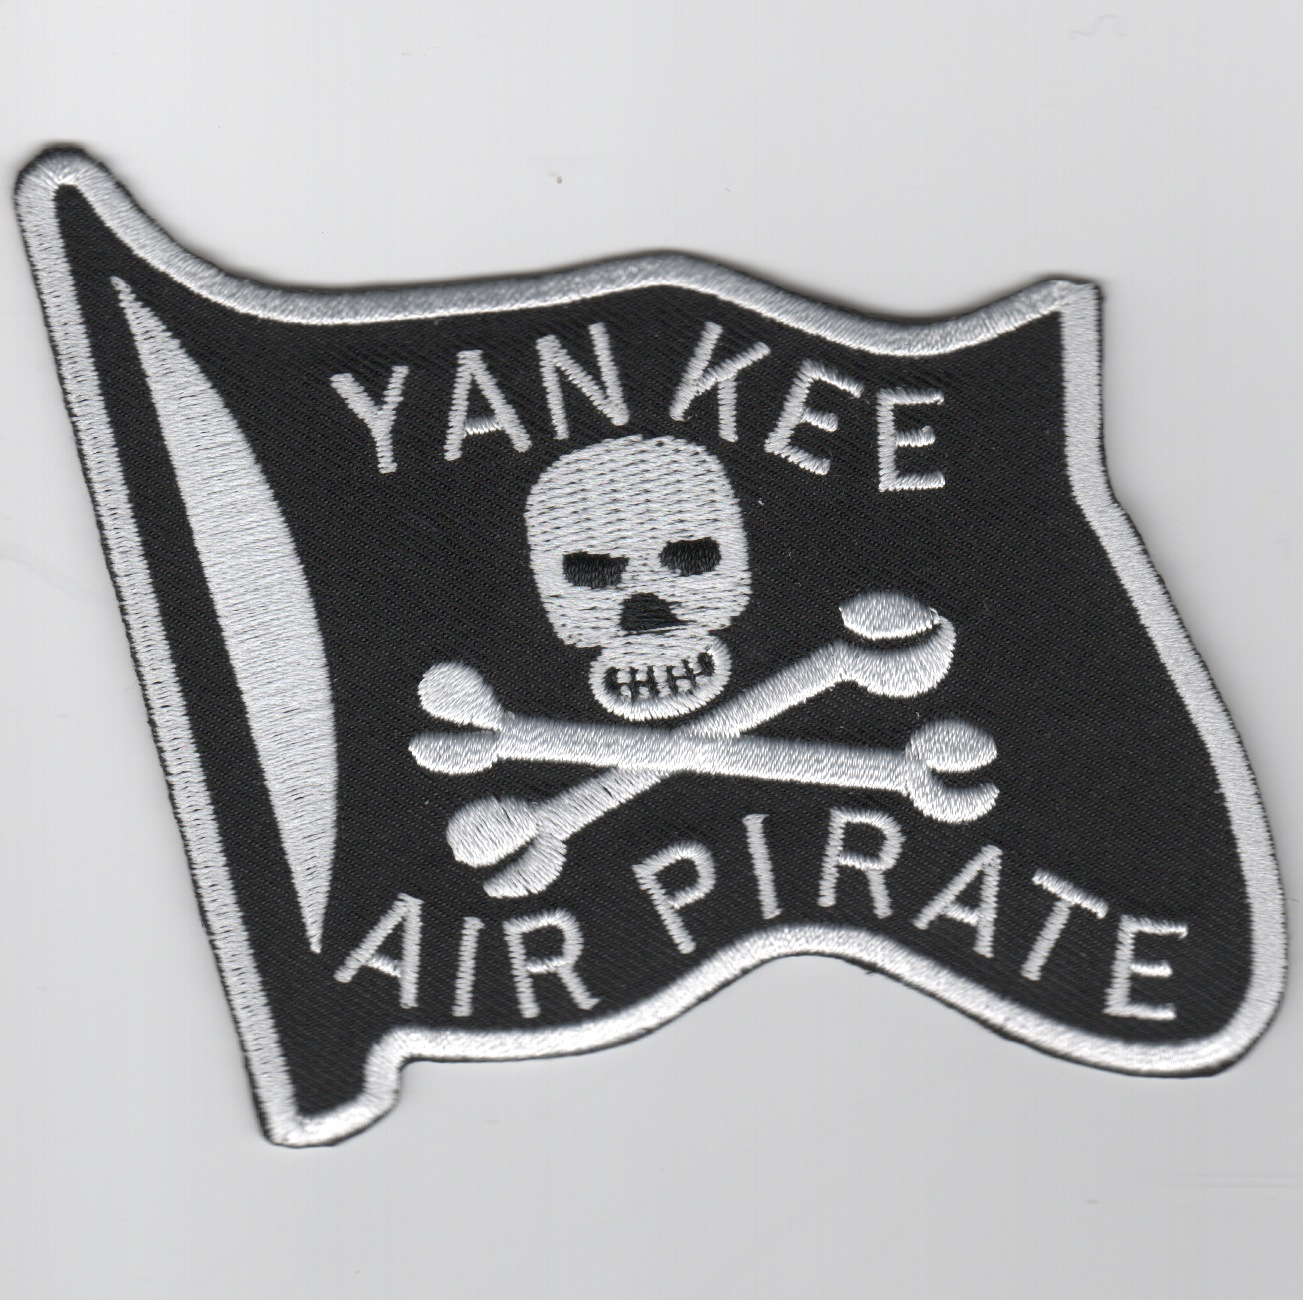 Yankee Air Pirate (Black/Lrg/No V)